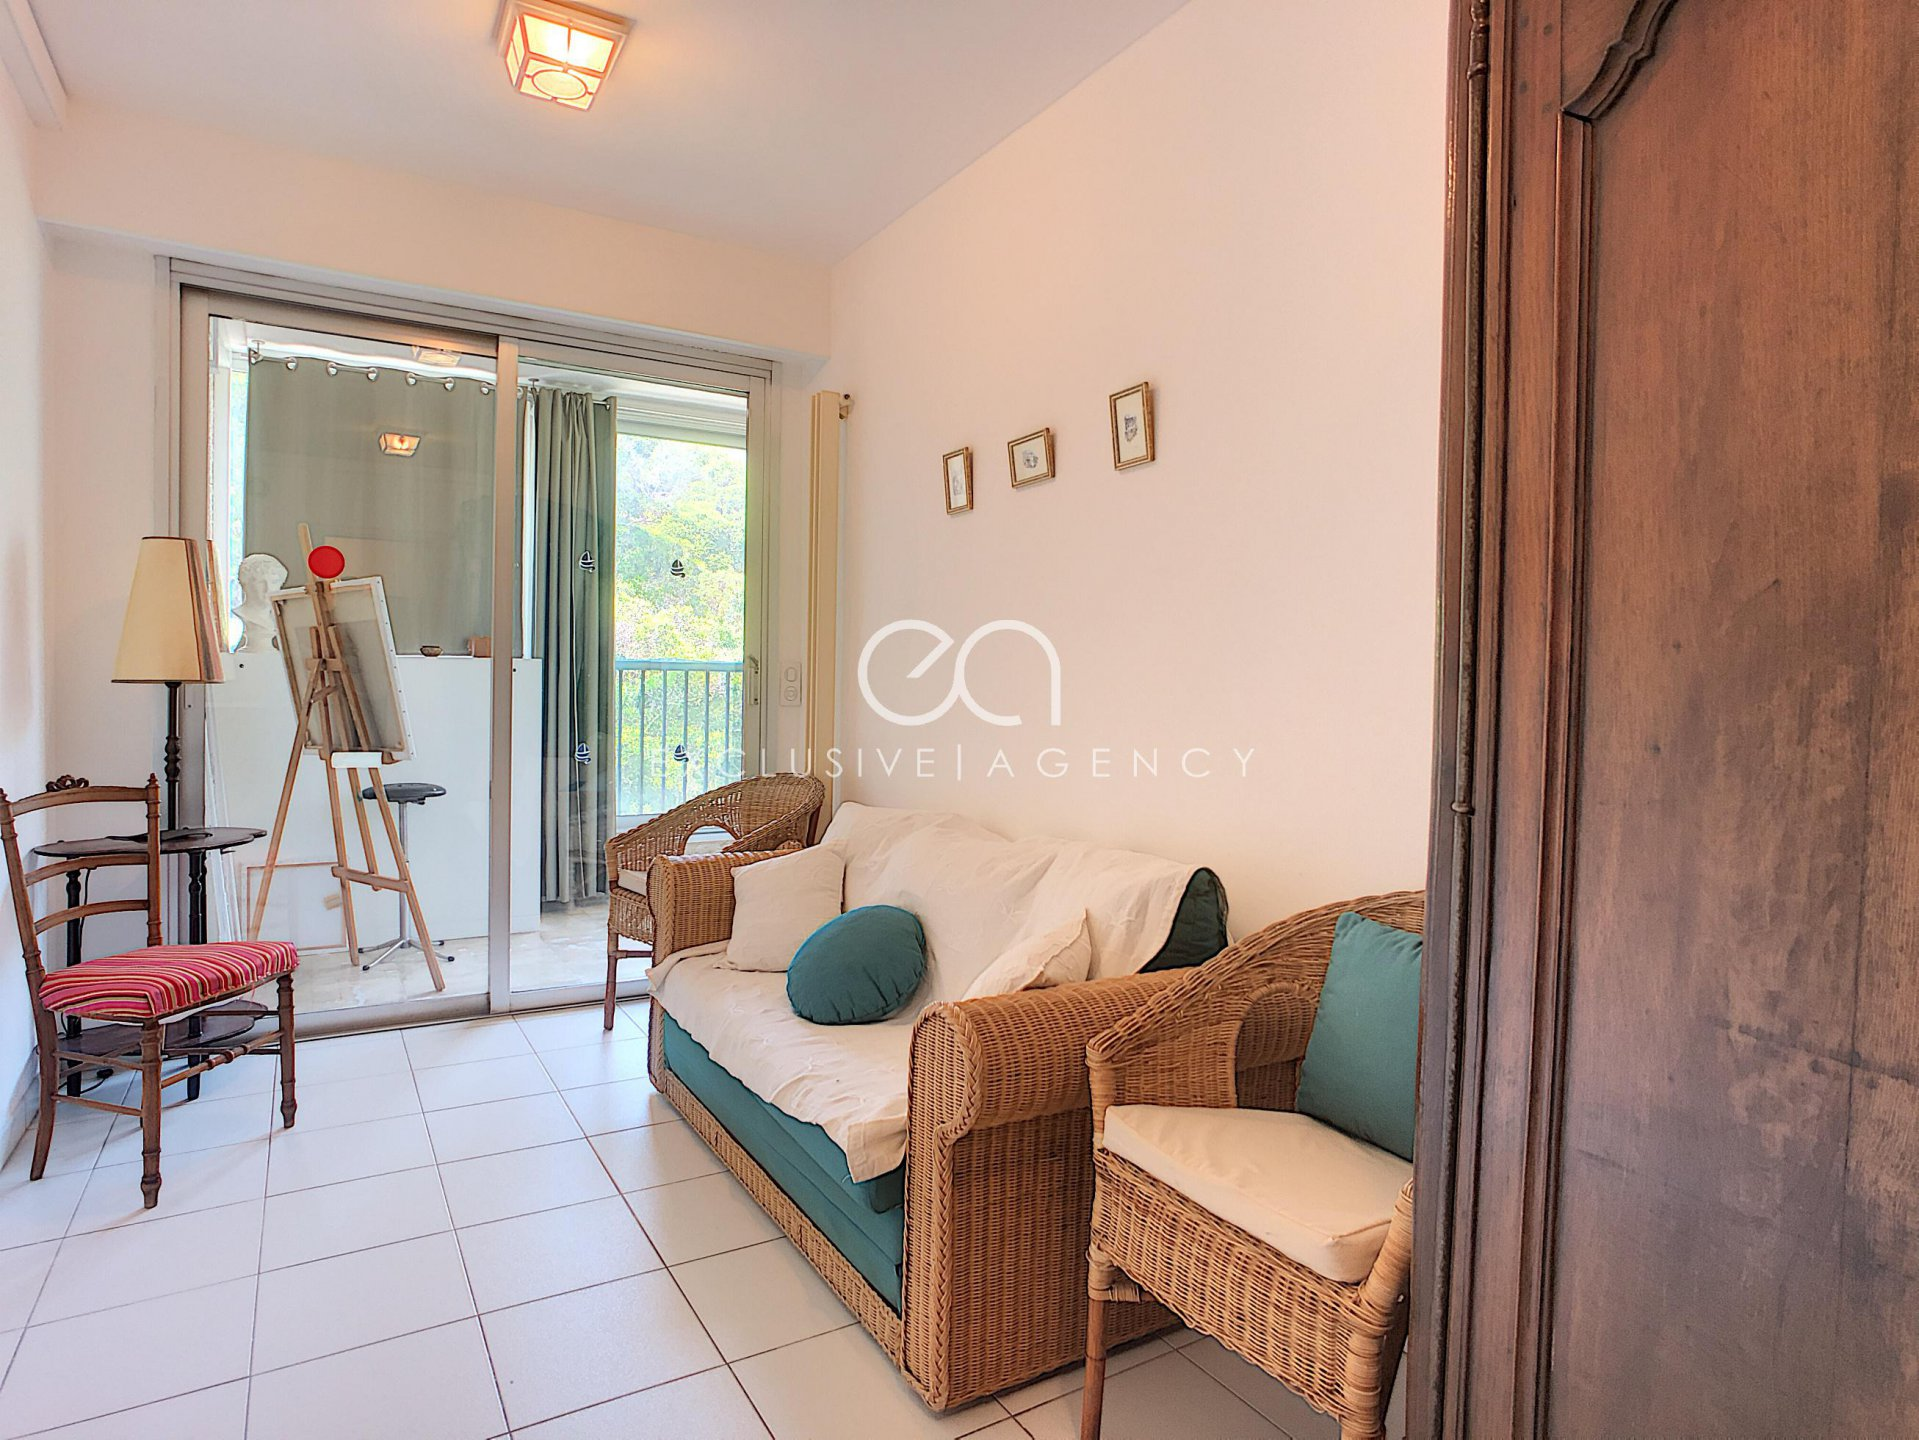 Cannes Californie 136sqm 3-bedroom apartment, terrace with panoramic sea view